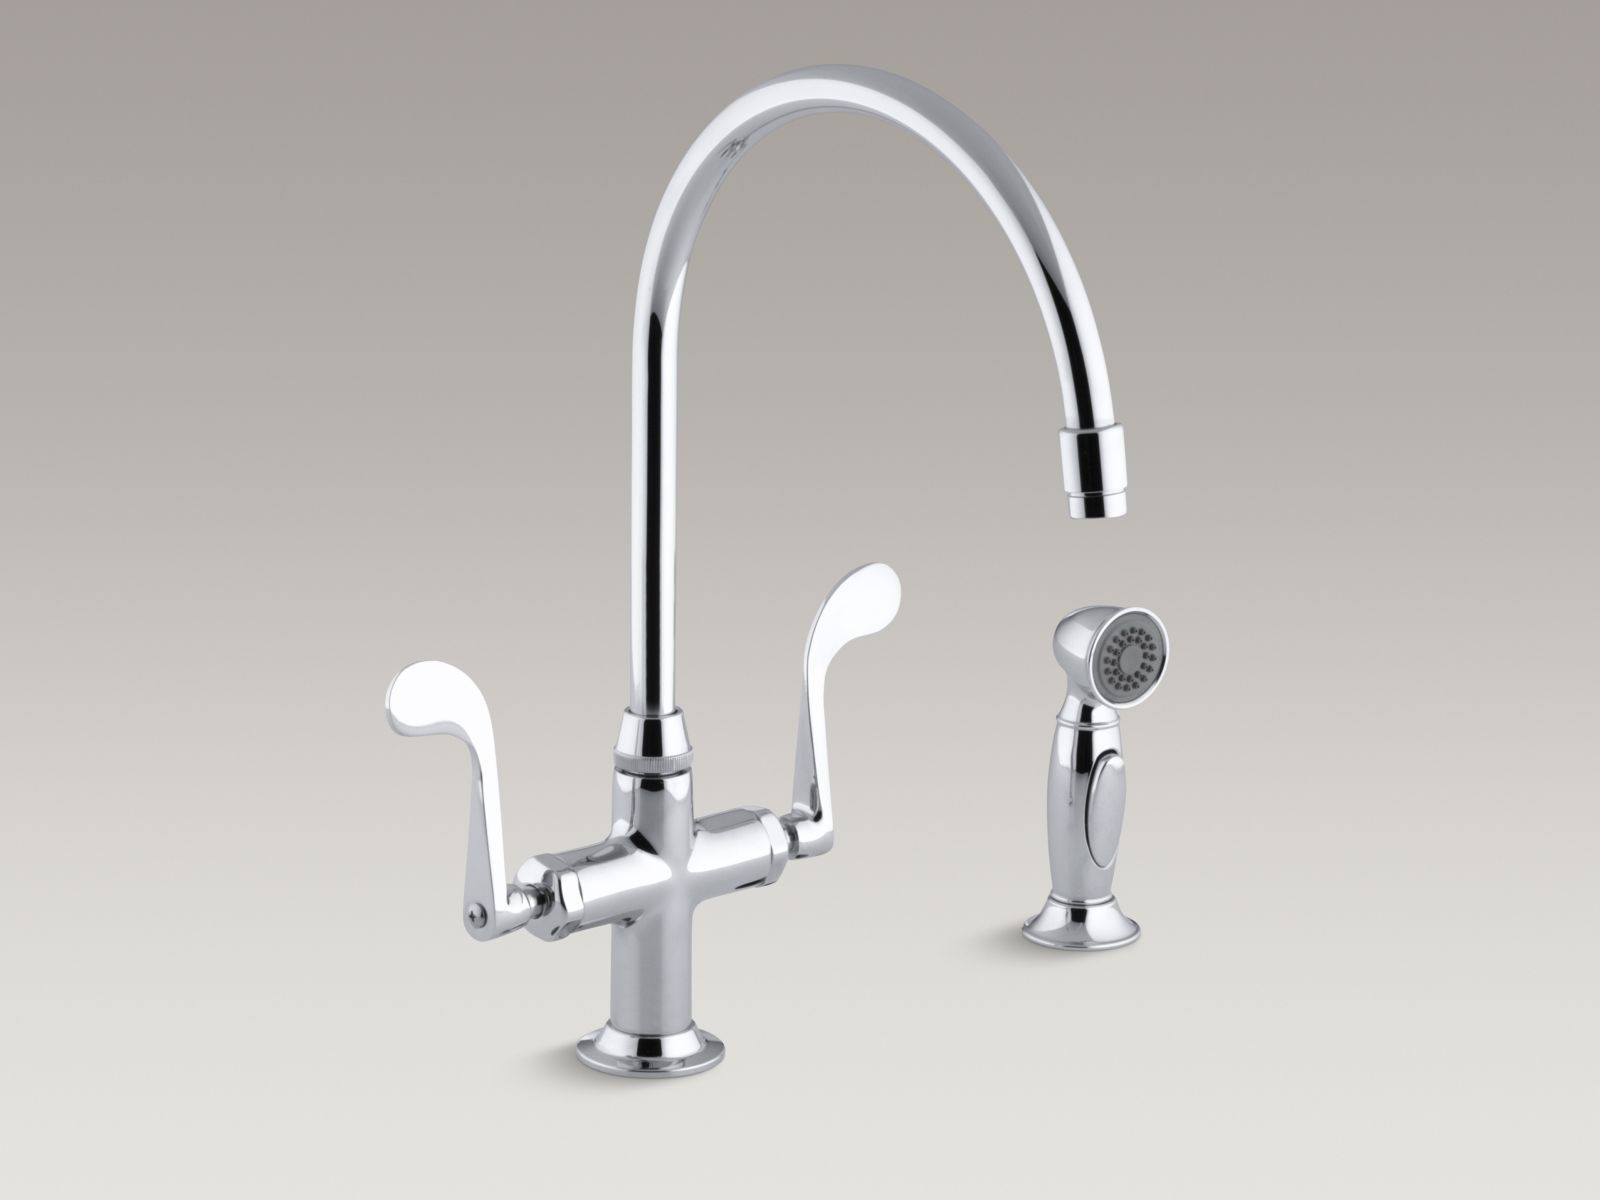 """Kohler K-8763-CP Essex Single-hole Two-handle Bar Faucet with 9"""" Gooseneck Spout, Color-matched Sidespray, and Wristblade Handles Polished Chrome"""